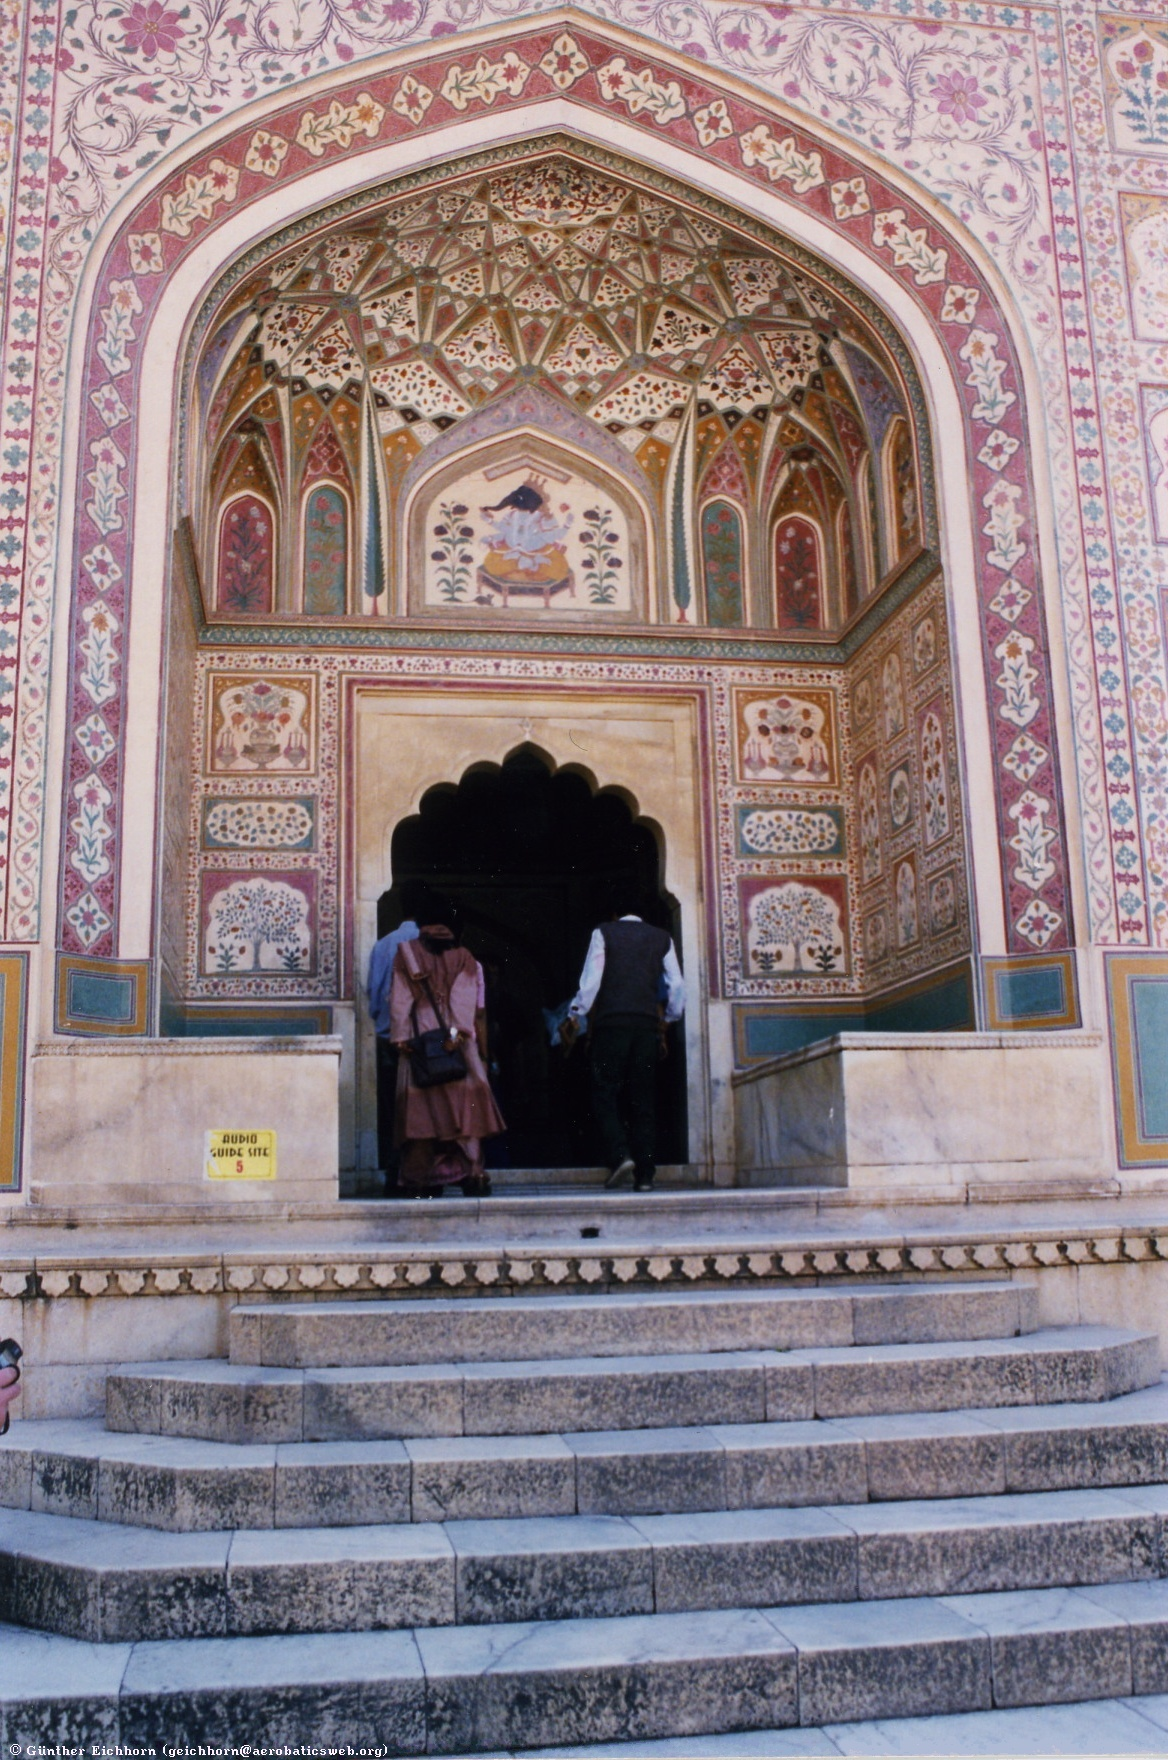 Entrance to the Amber Palace in Jaipur. Image of the Hindu God Ganesh above the door.